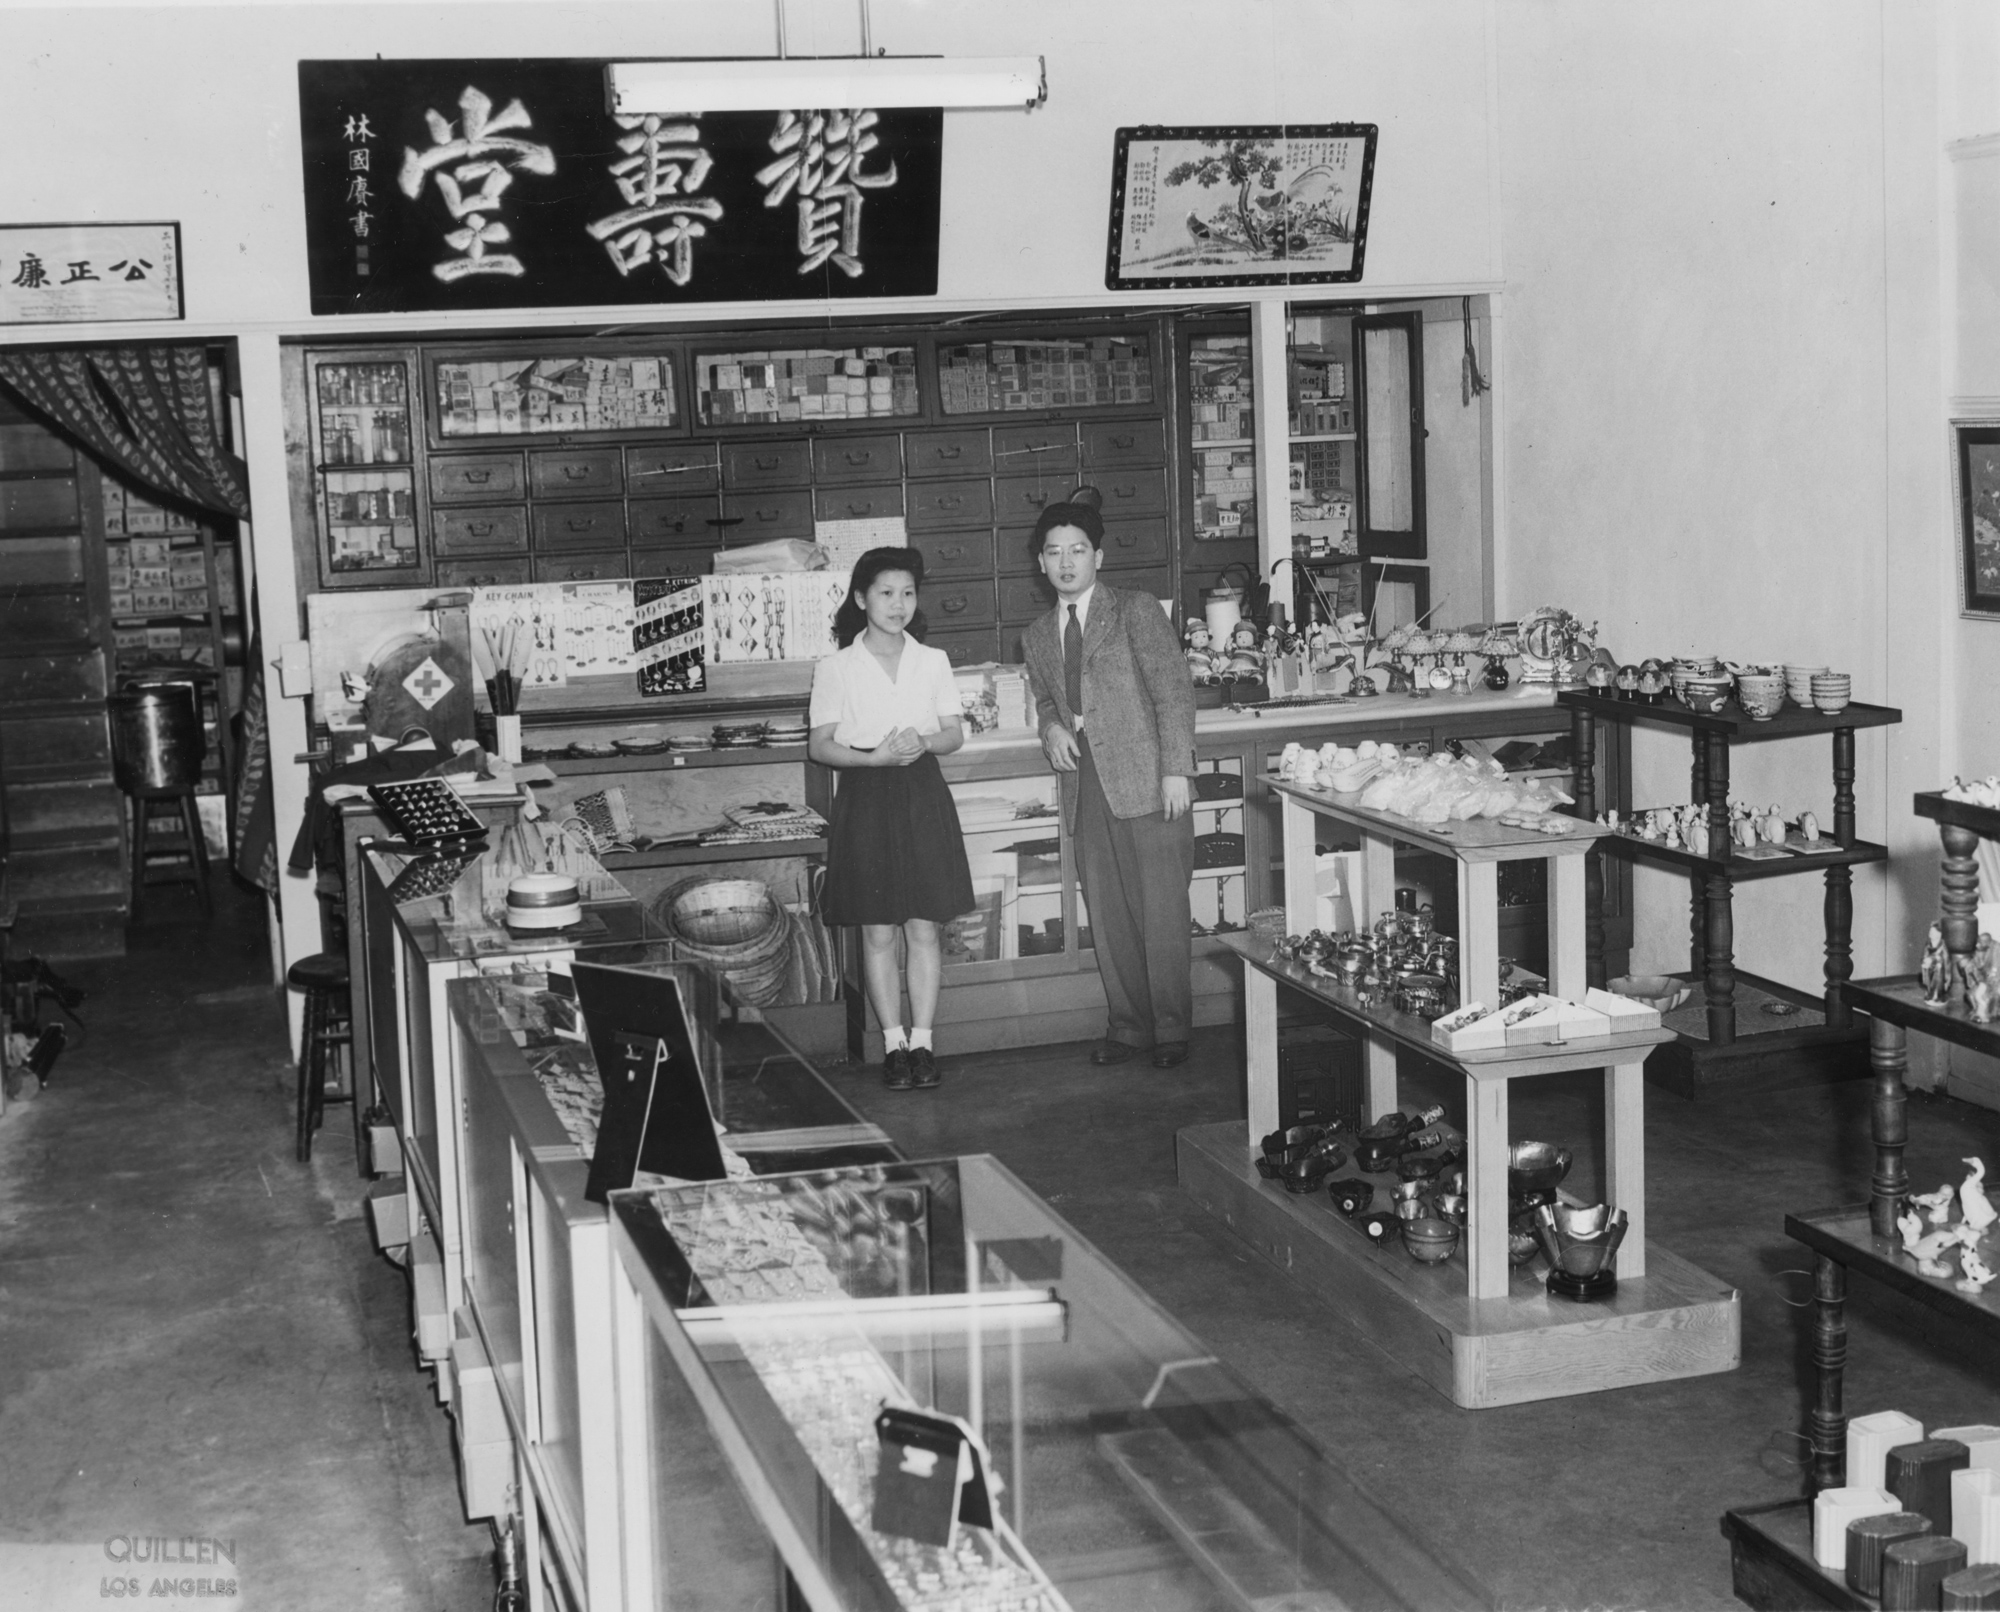 Dun Sow Hong store in New Chinatown Central Plaza, Lilly & George T. S. Mu pictured (1940s)